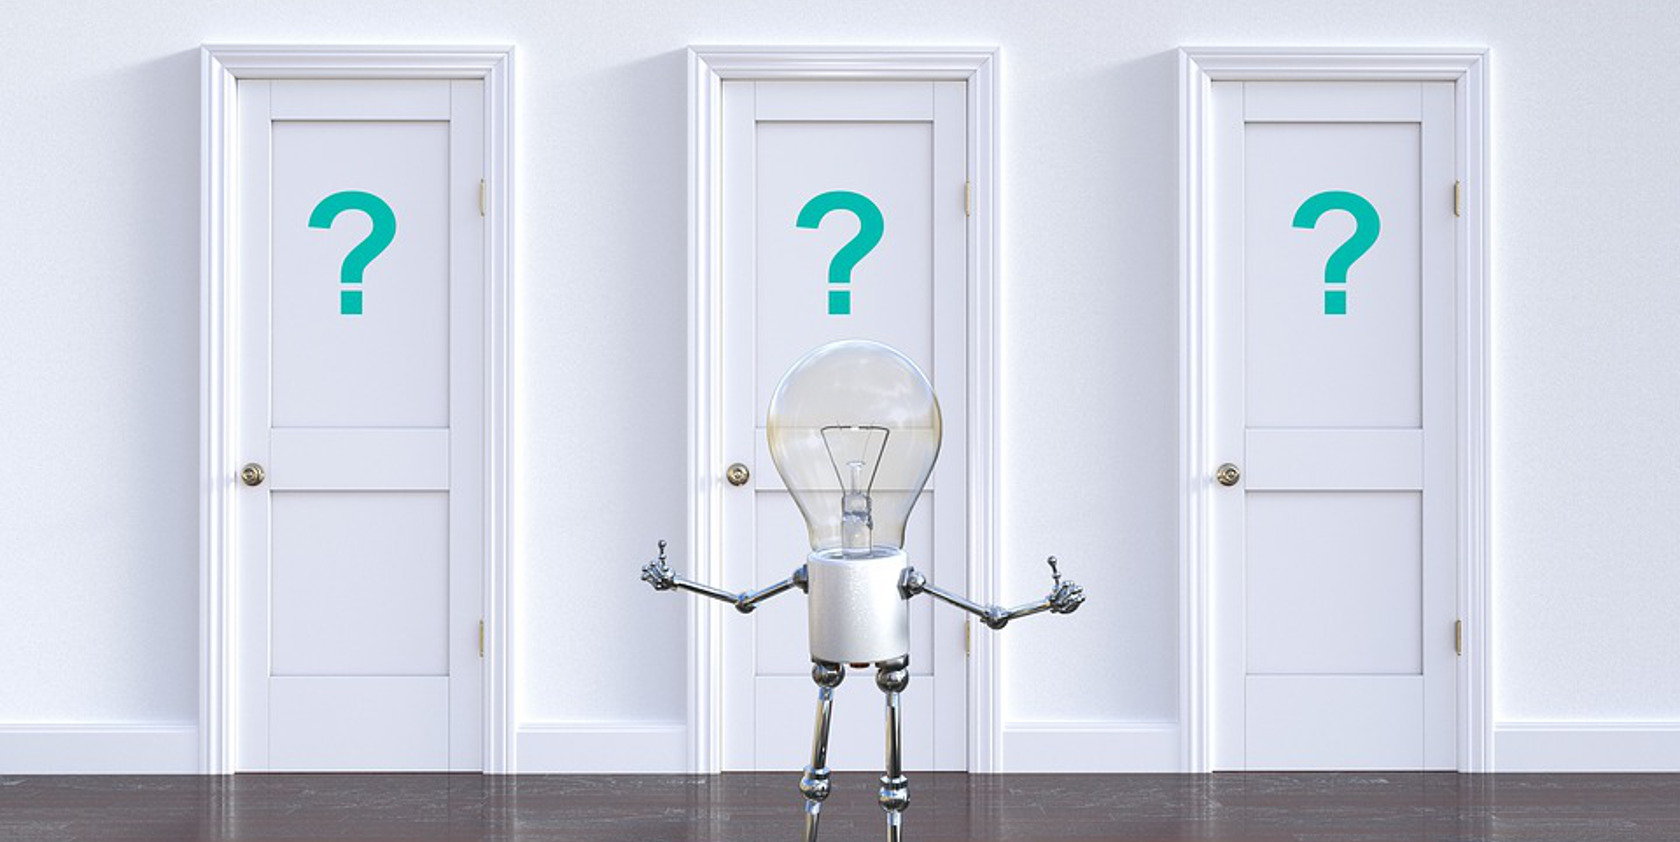 lightbulb character pondering which door to take to his next step